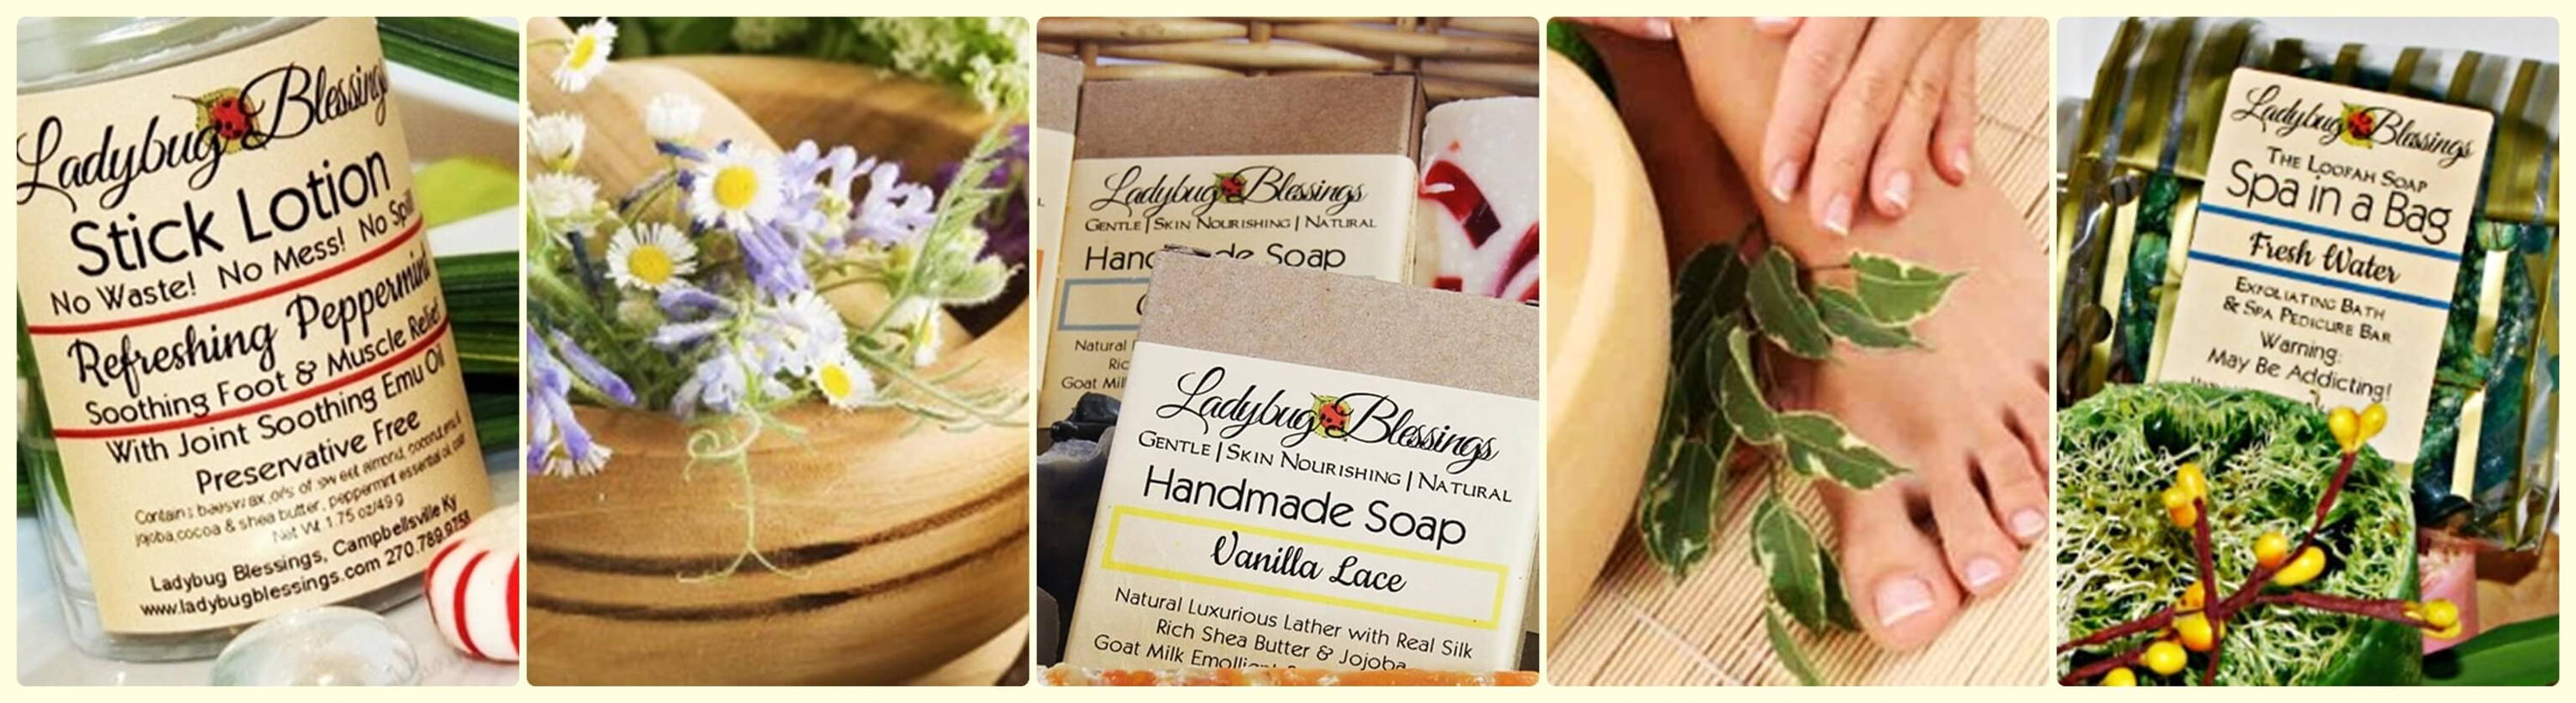 Wholesale Bath and Body, Wholesale soap and lotion, wholesale handmade bath, wholesale natural bath and body